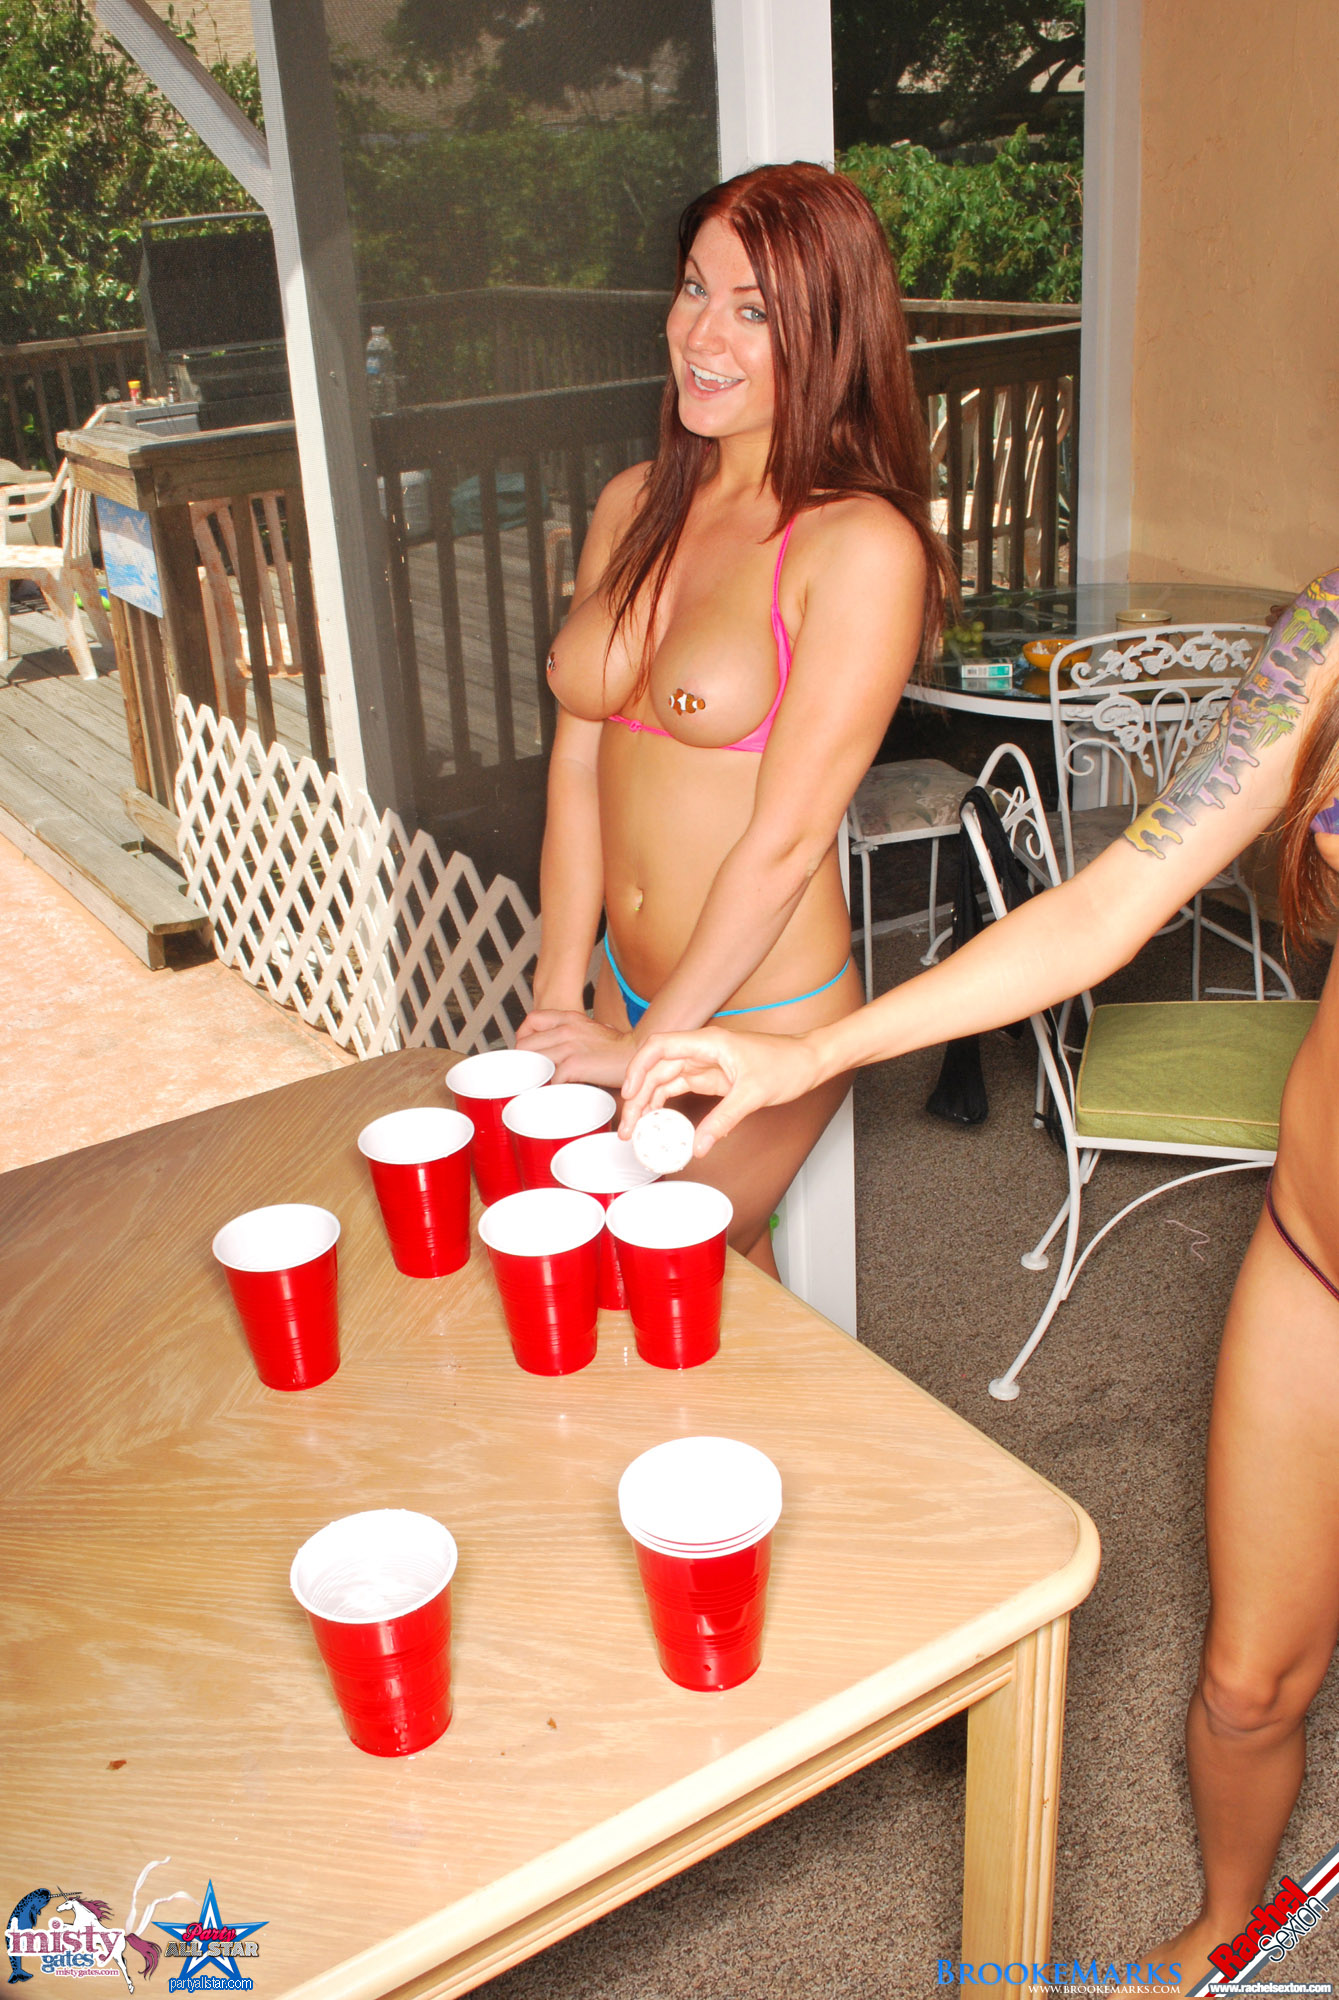 Naked beer pong pics, women getting fucked till it hurts